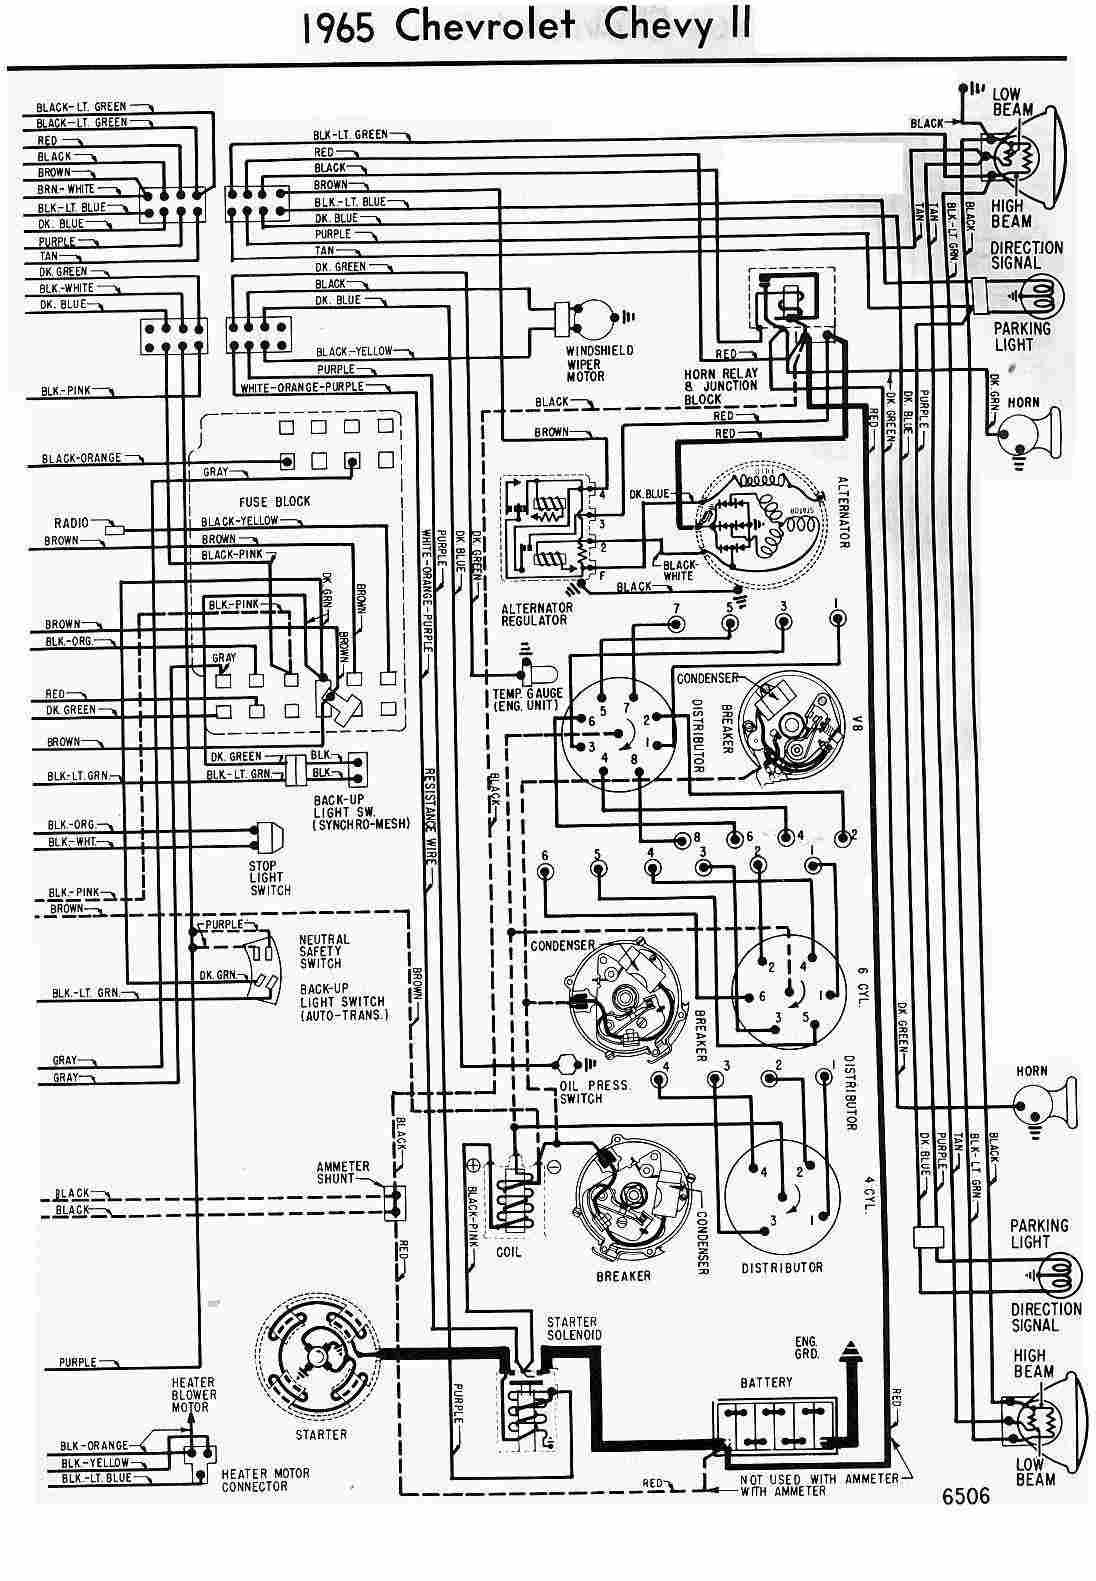 1975 C10 Pickup Wiring Diagram Library 82 Chevy Truck Harness As Well 1971 Black On Rh Nicaea Co